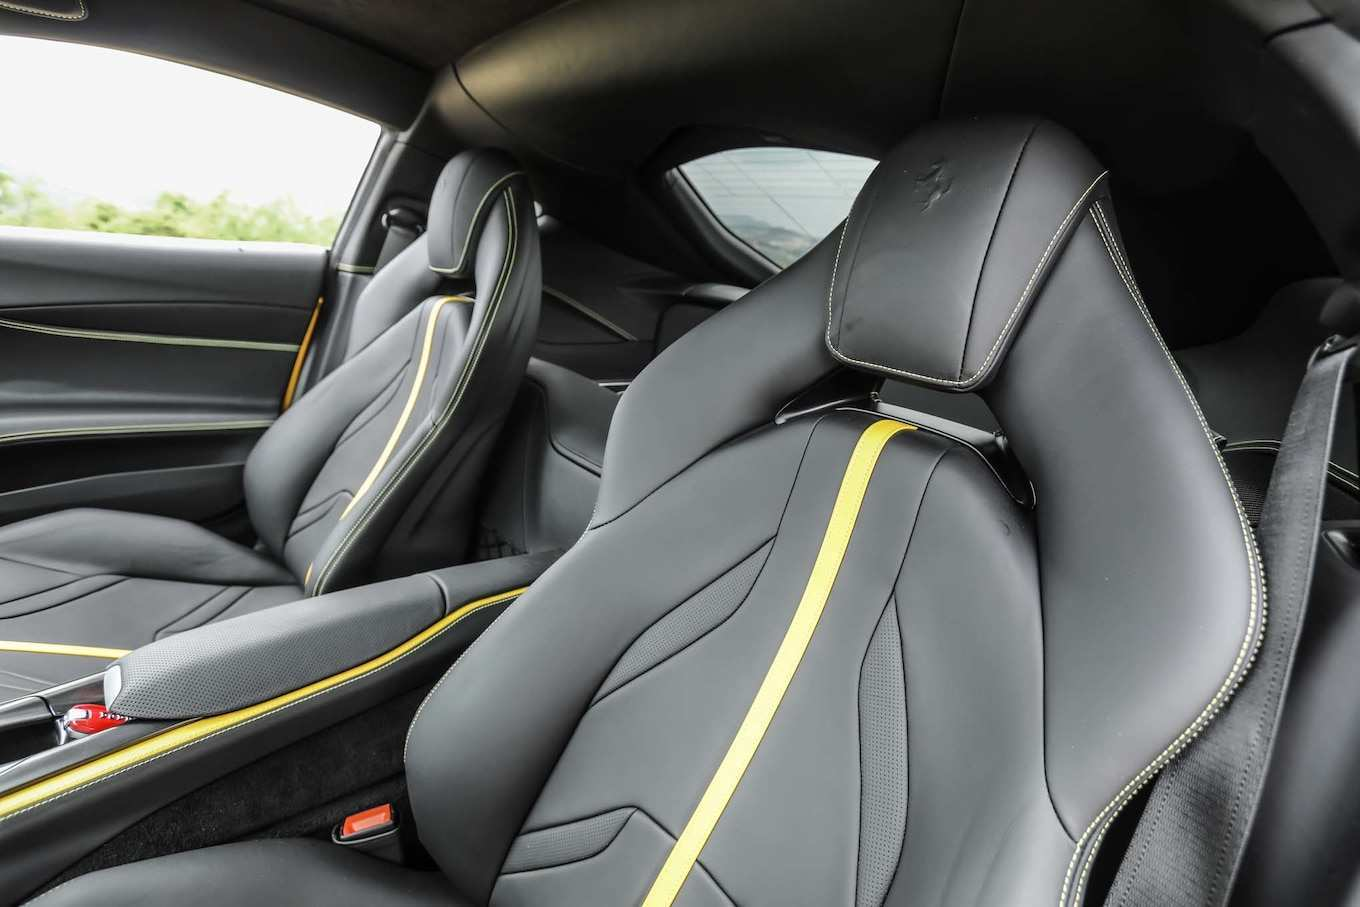 20 All New 2019 Ferrari Superfast Interior Specs and Review by 2019 Ferrari Superfast Interior